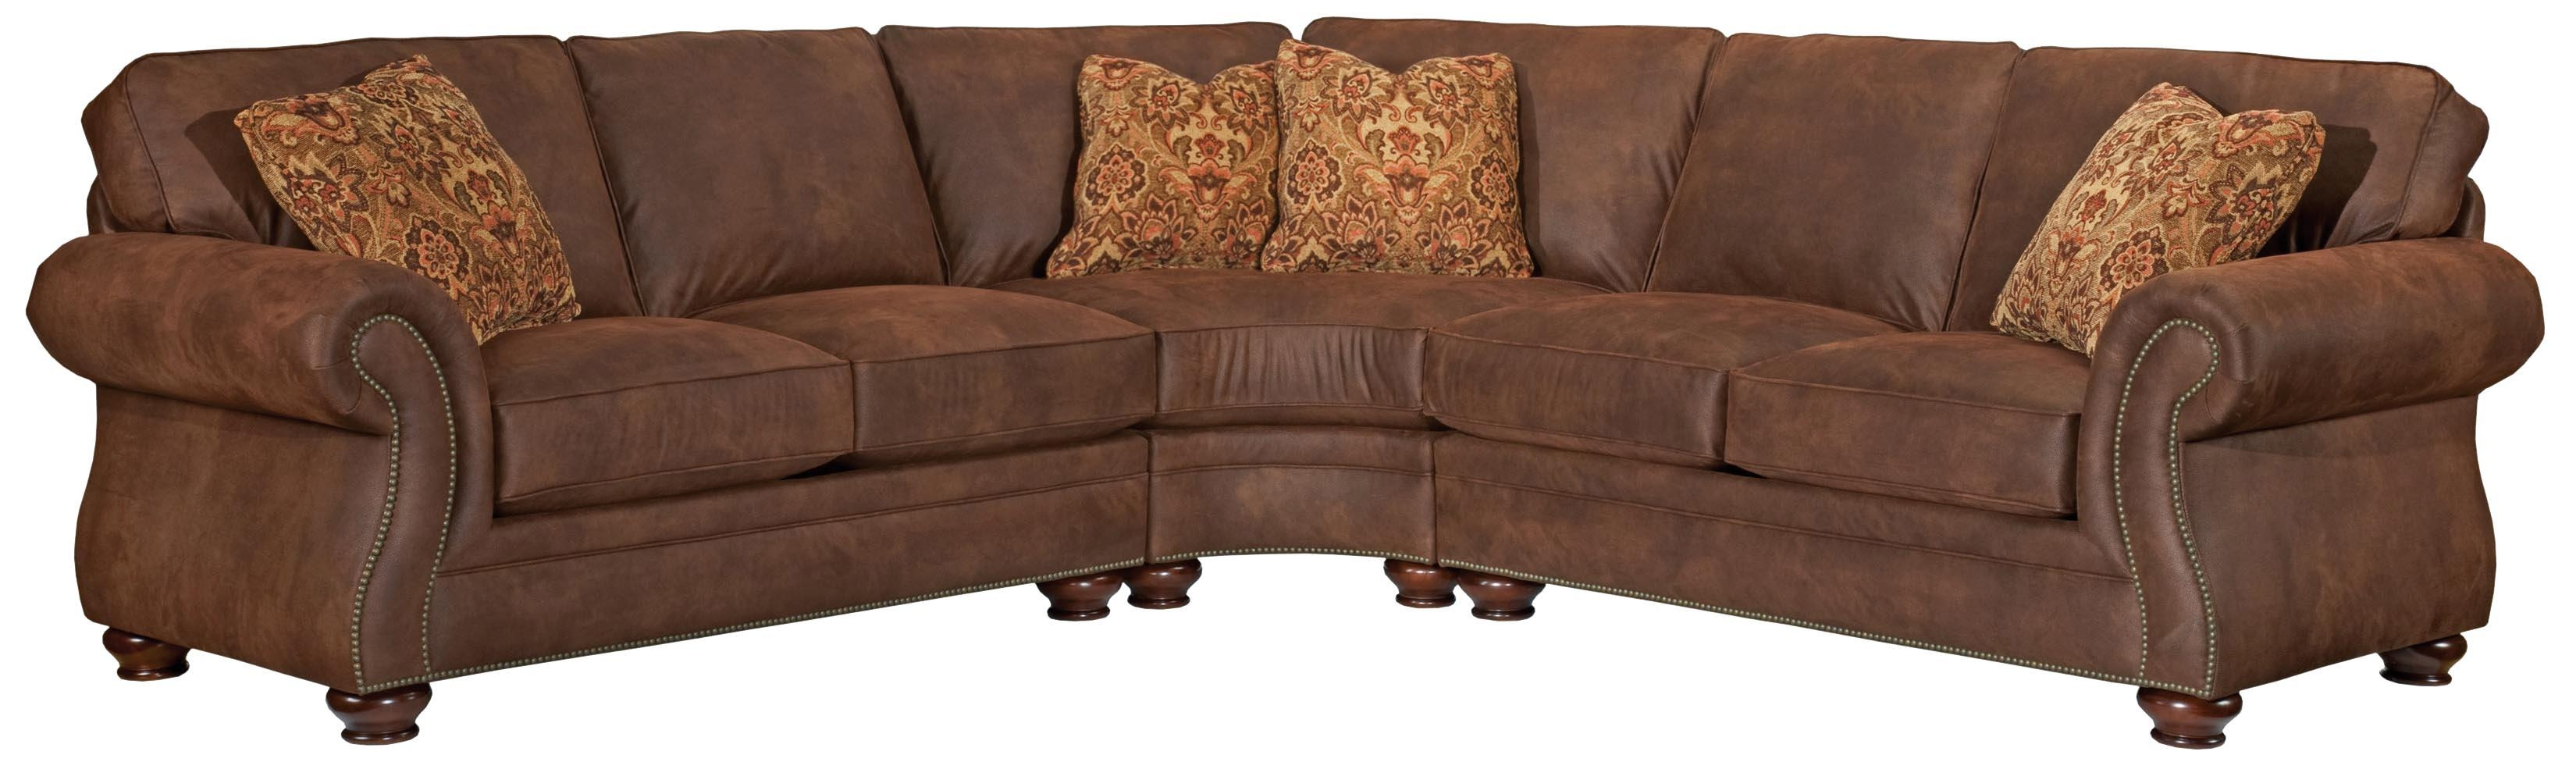 Broyhill Furniture Laramie 3 Piece Wedge Sectional Sofa – Wayside For Broyhill Sofas (Image 9 of 20)